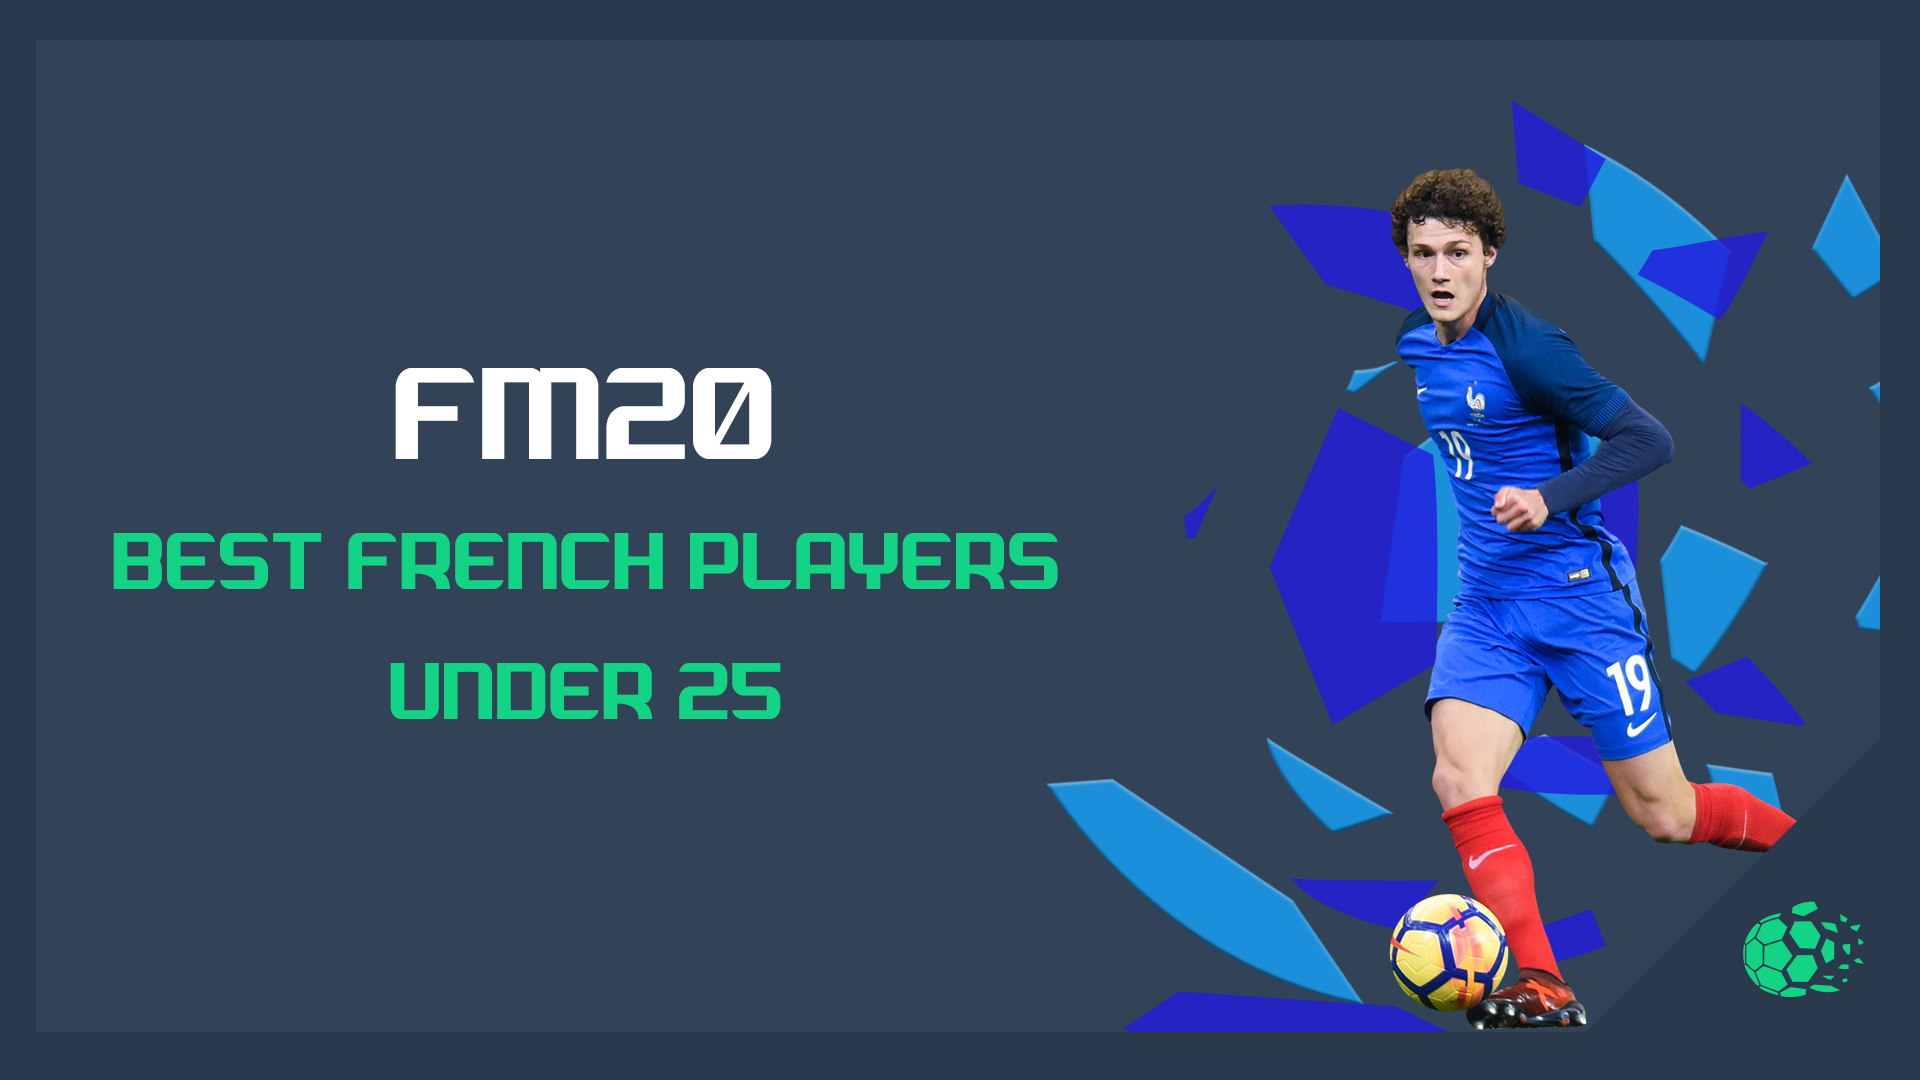 """FM20 FM20: Best French Player Under 25"" feature image"